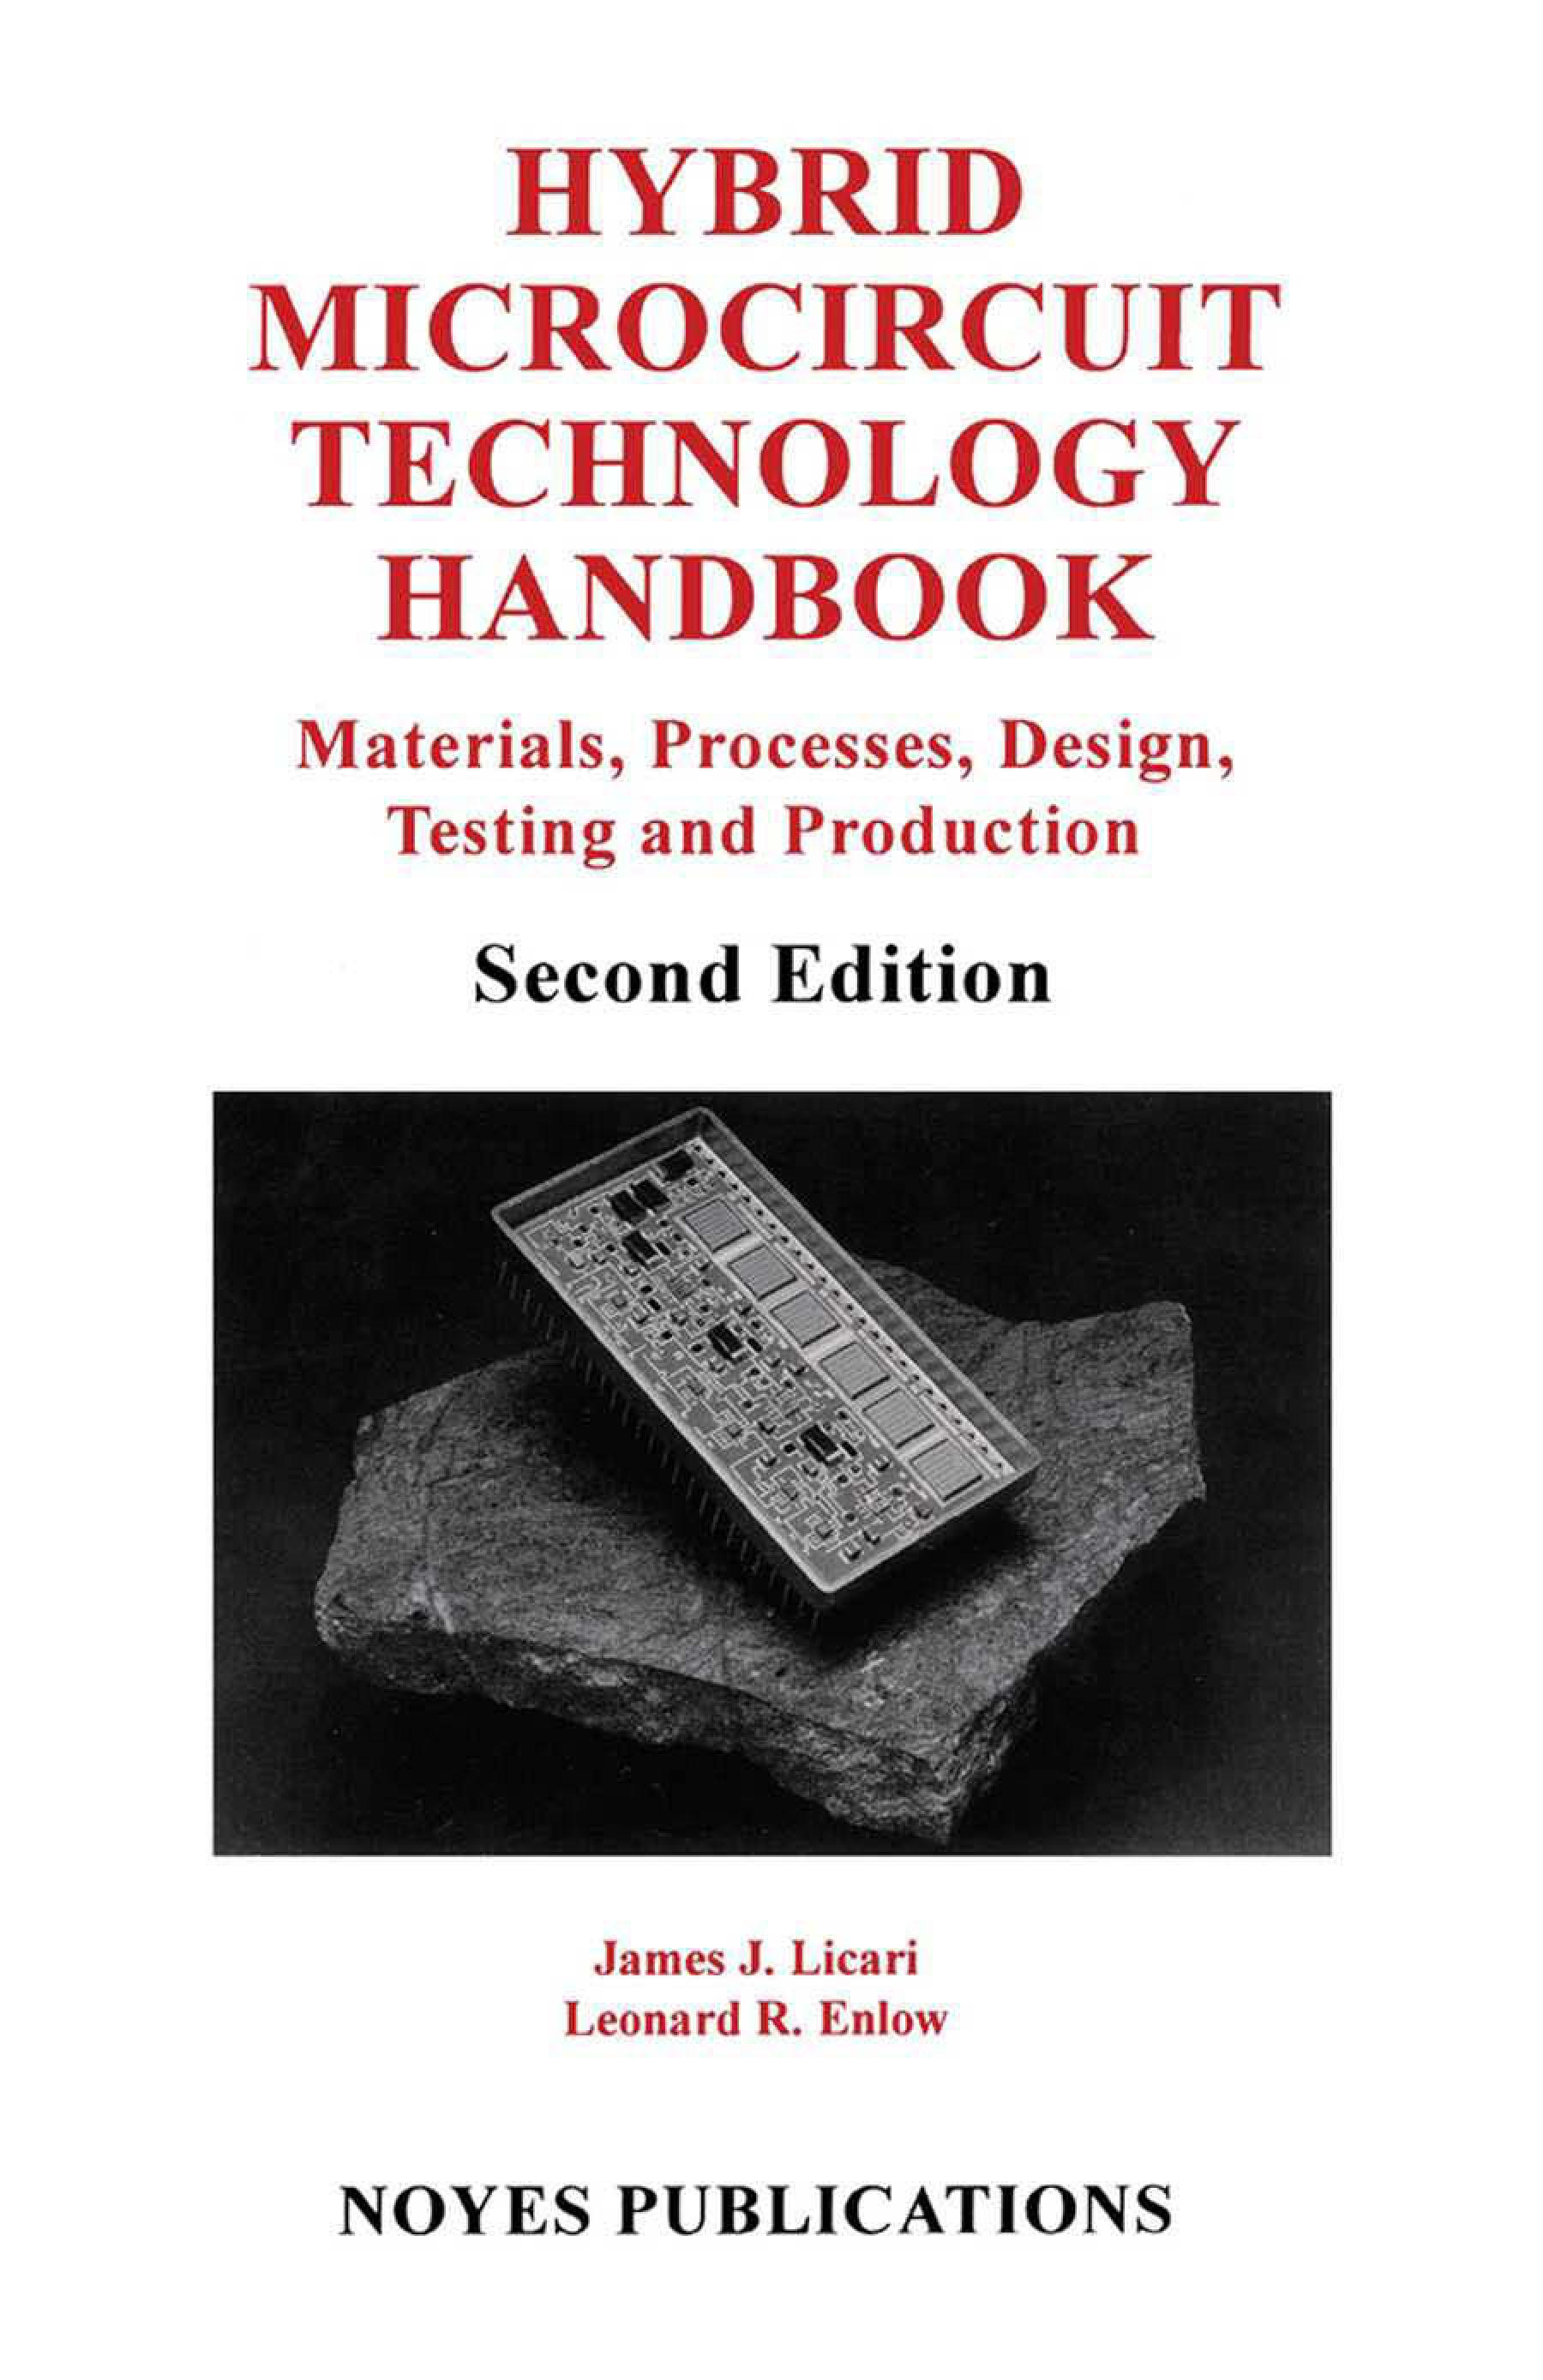 Hybrid Microcircuit Technology Handbook, 2nd Edition: Materials, Processes, Design, Testing and Production